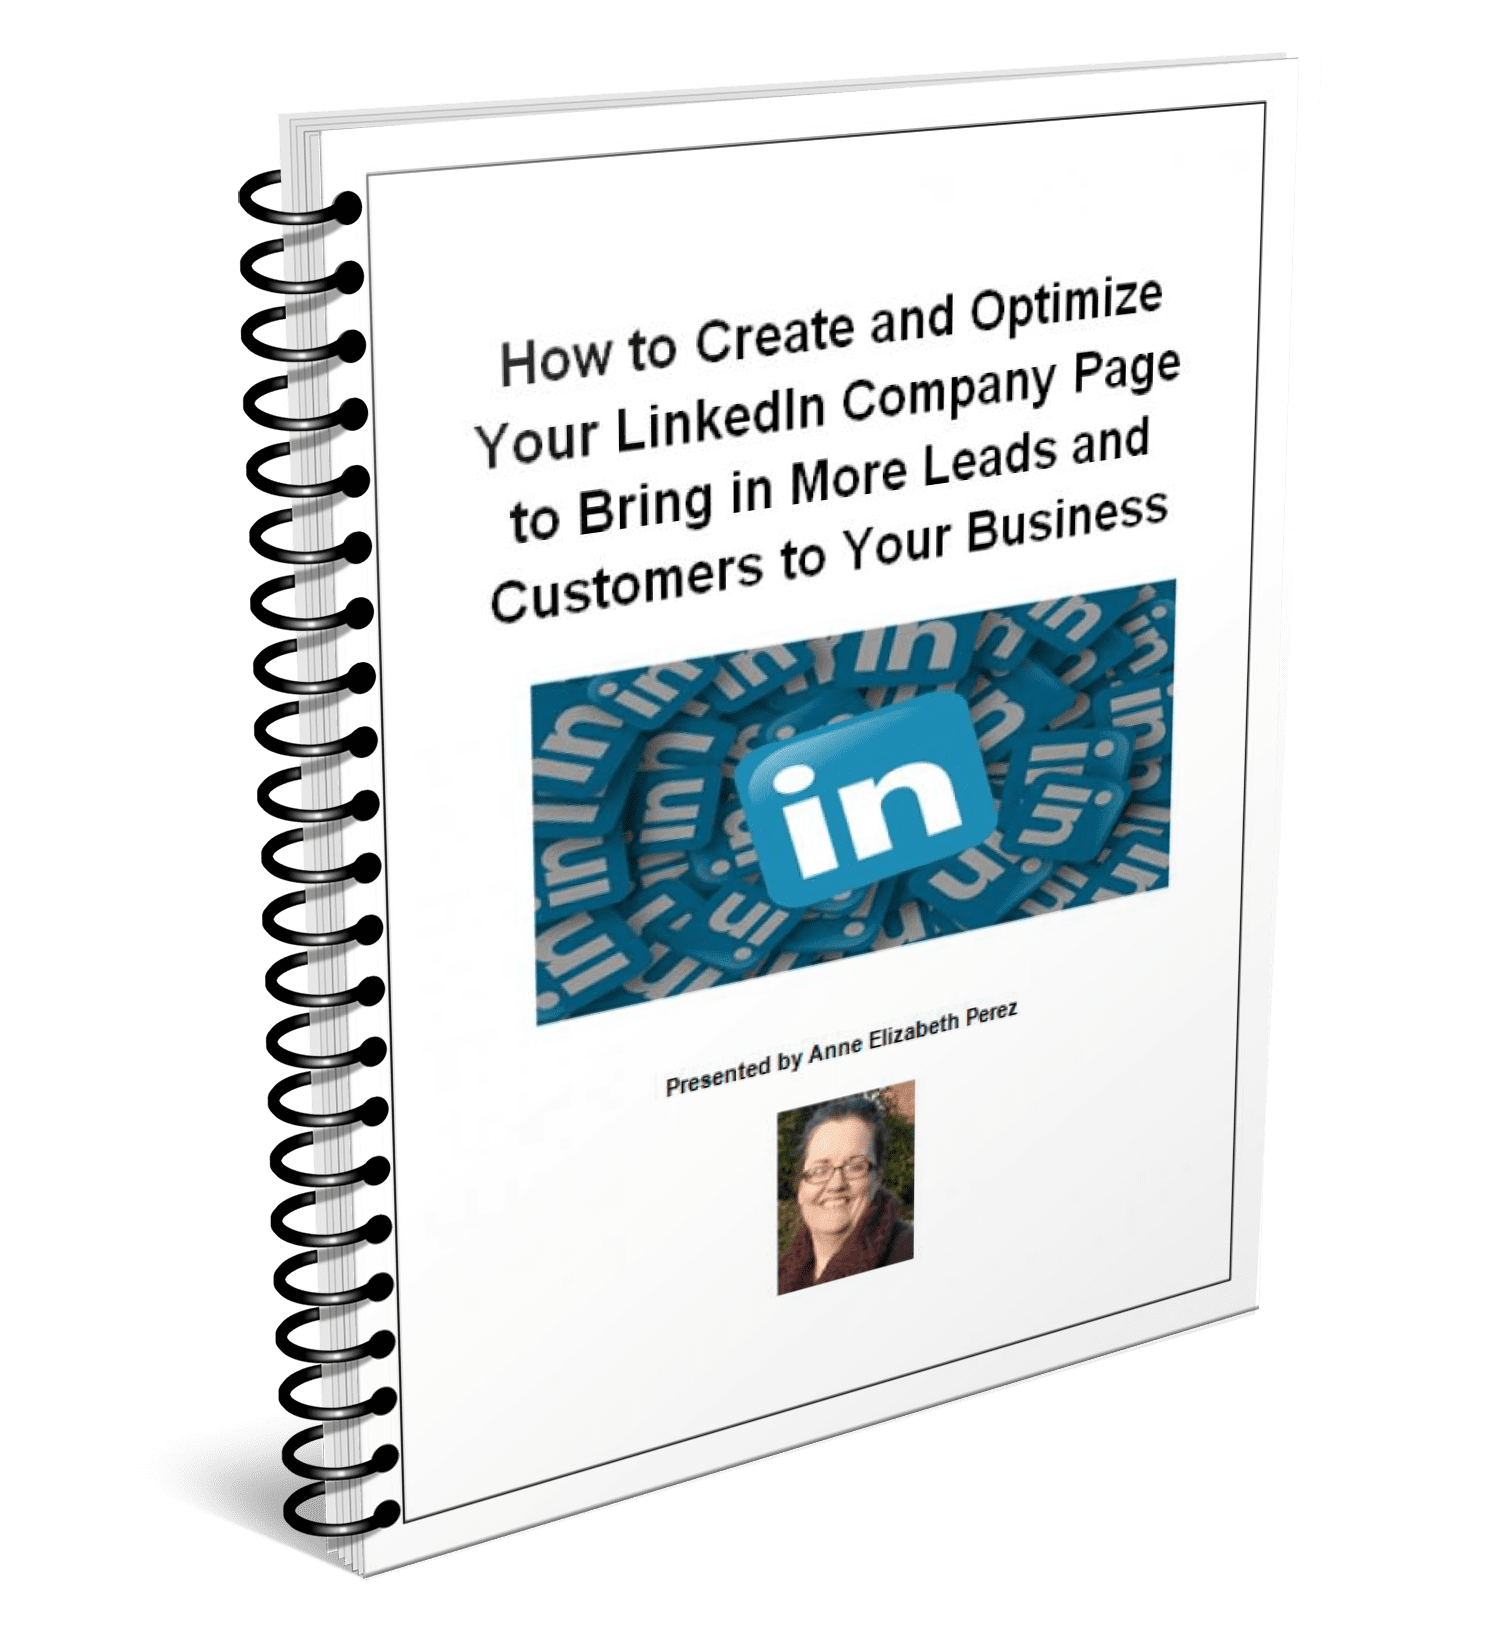 How to Create and Optimize Your LinkedIn company page